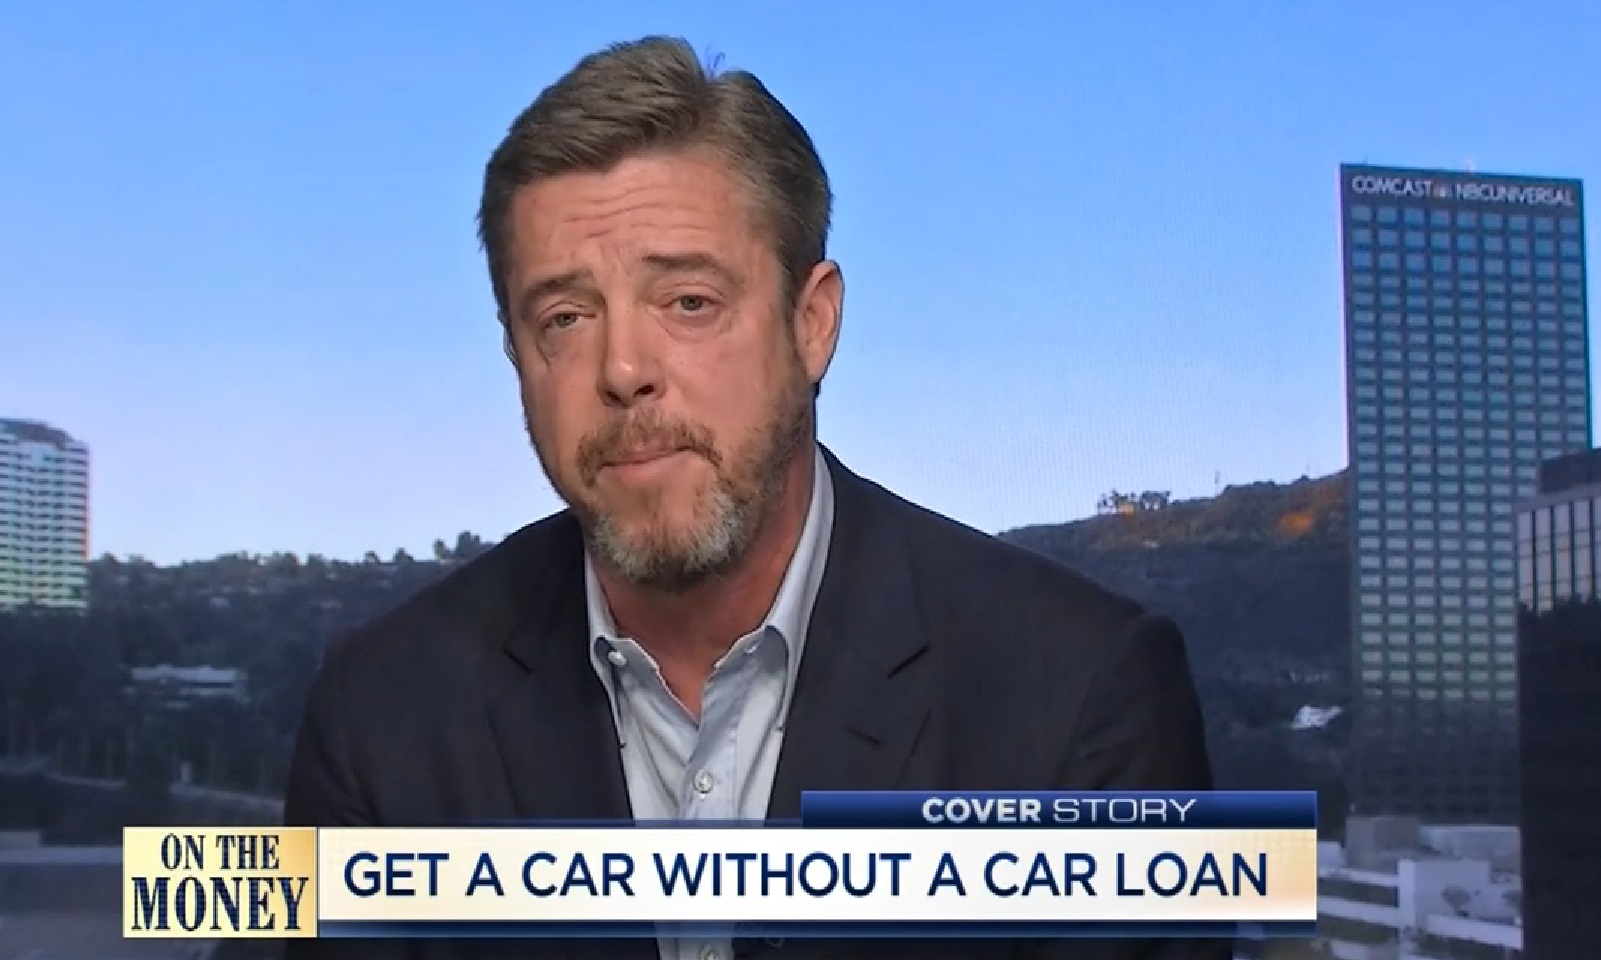 Fair founder, Scott Painter, speaks with CNBC's On The Money